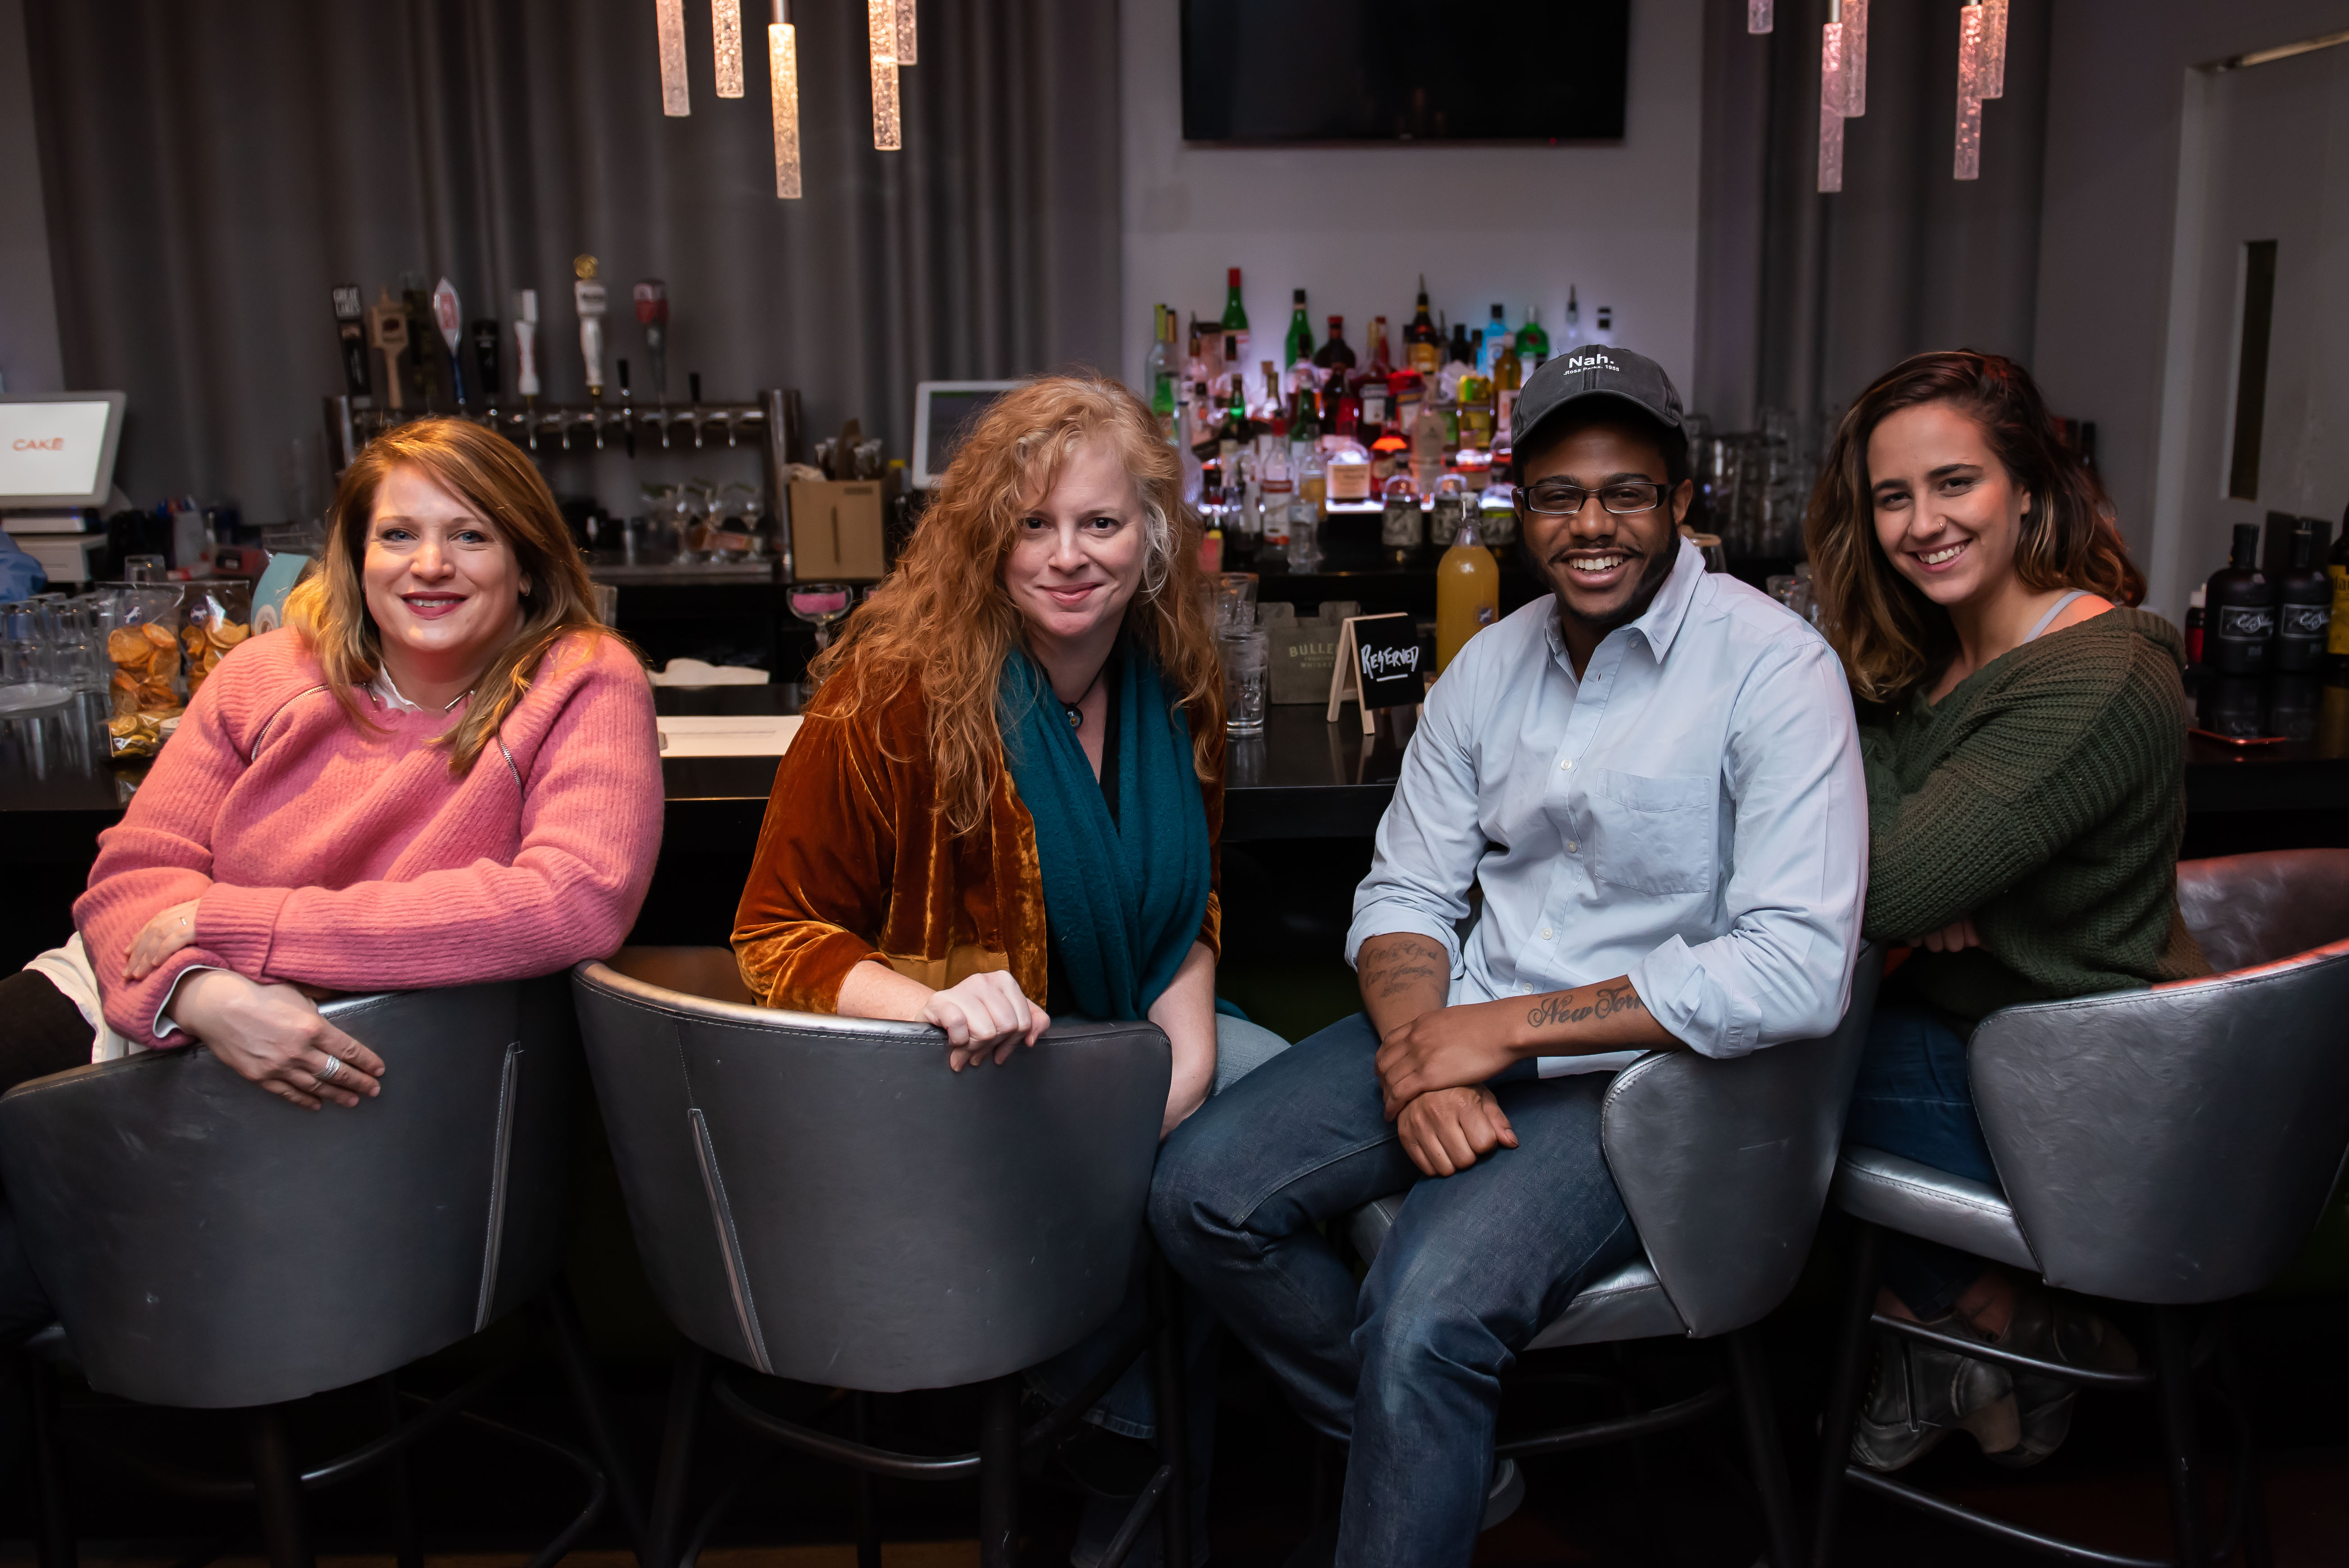 Celeb judges: Amy{ } Brandwein, M. Carrie Allan, Kwame Onwuachi and Carlie Steiner. (Image: Joy Asico / DC Refined)